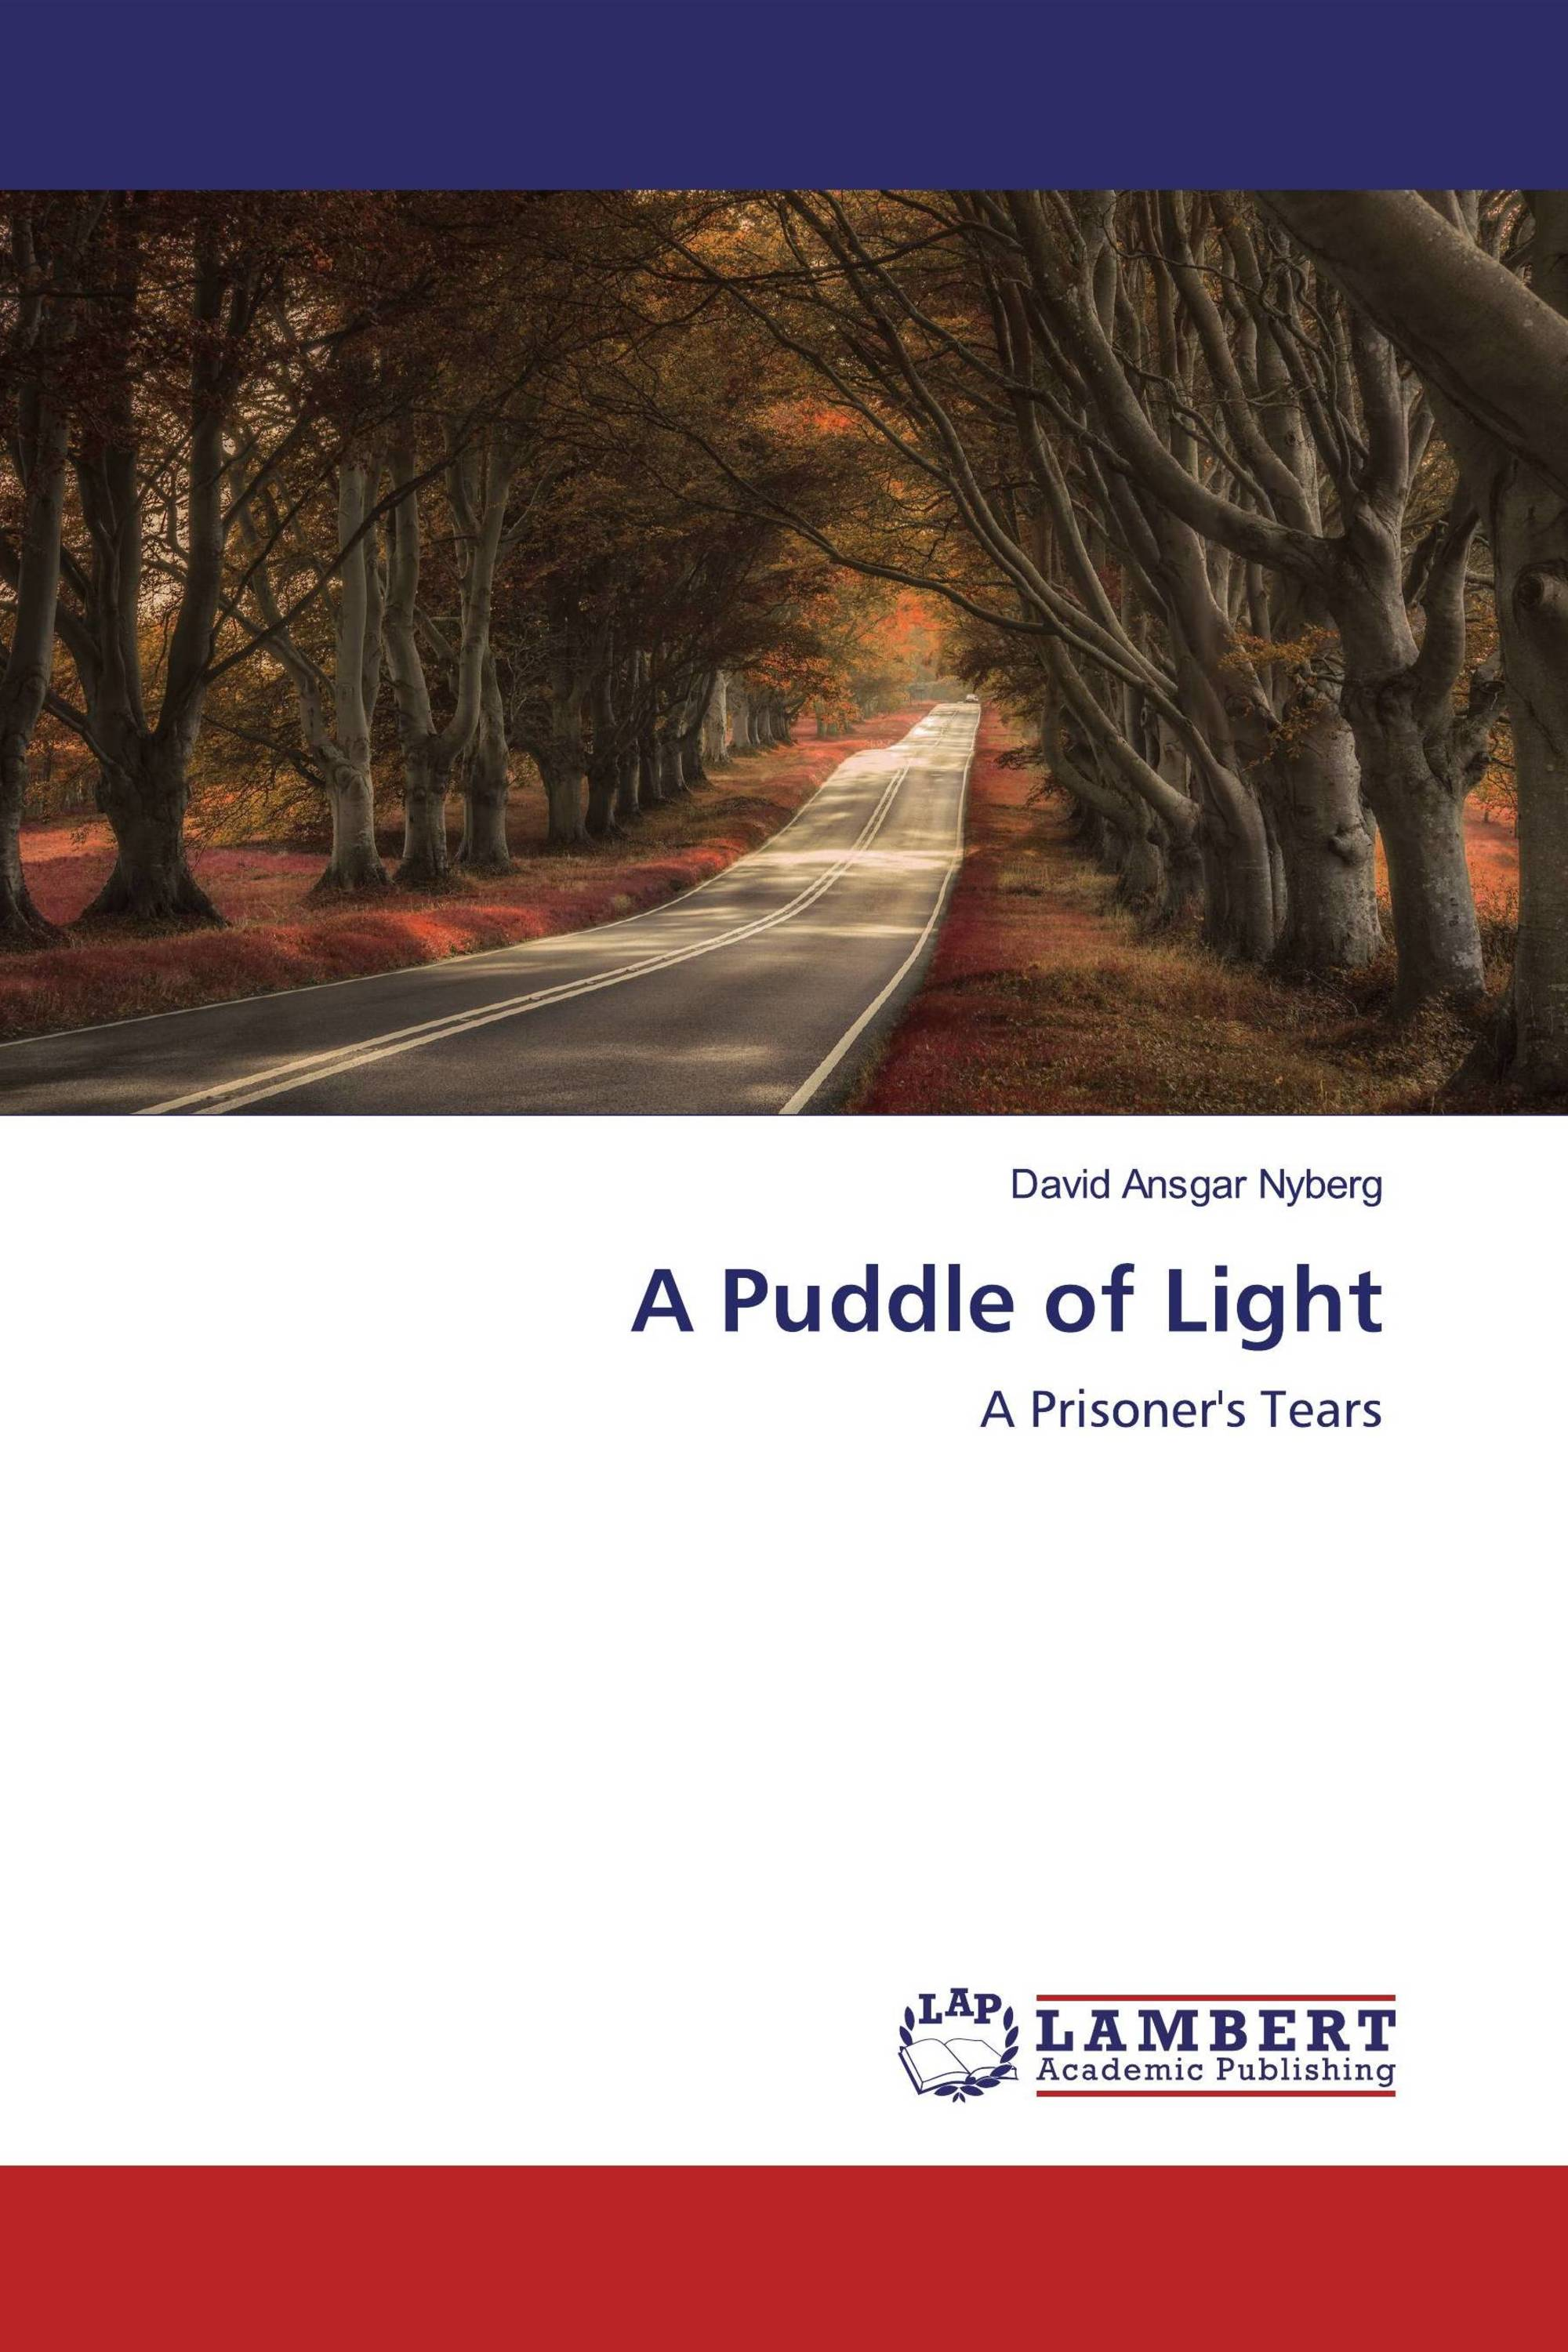 A Puddle of Light